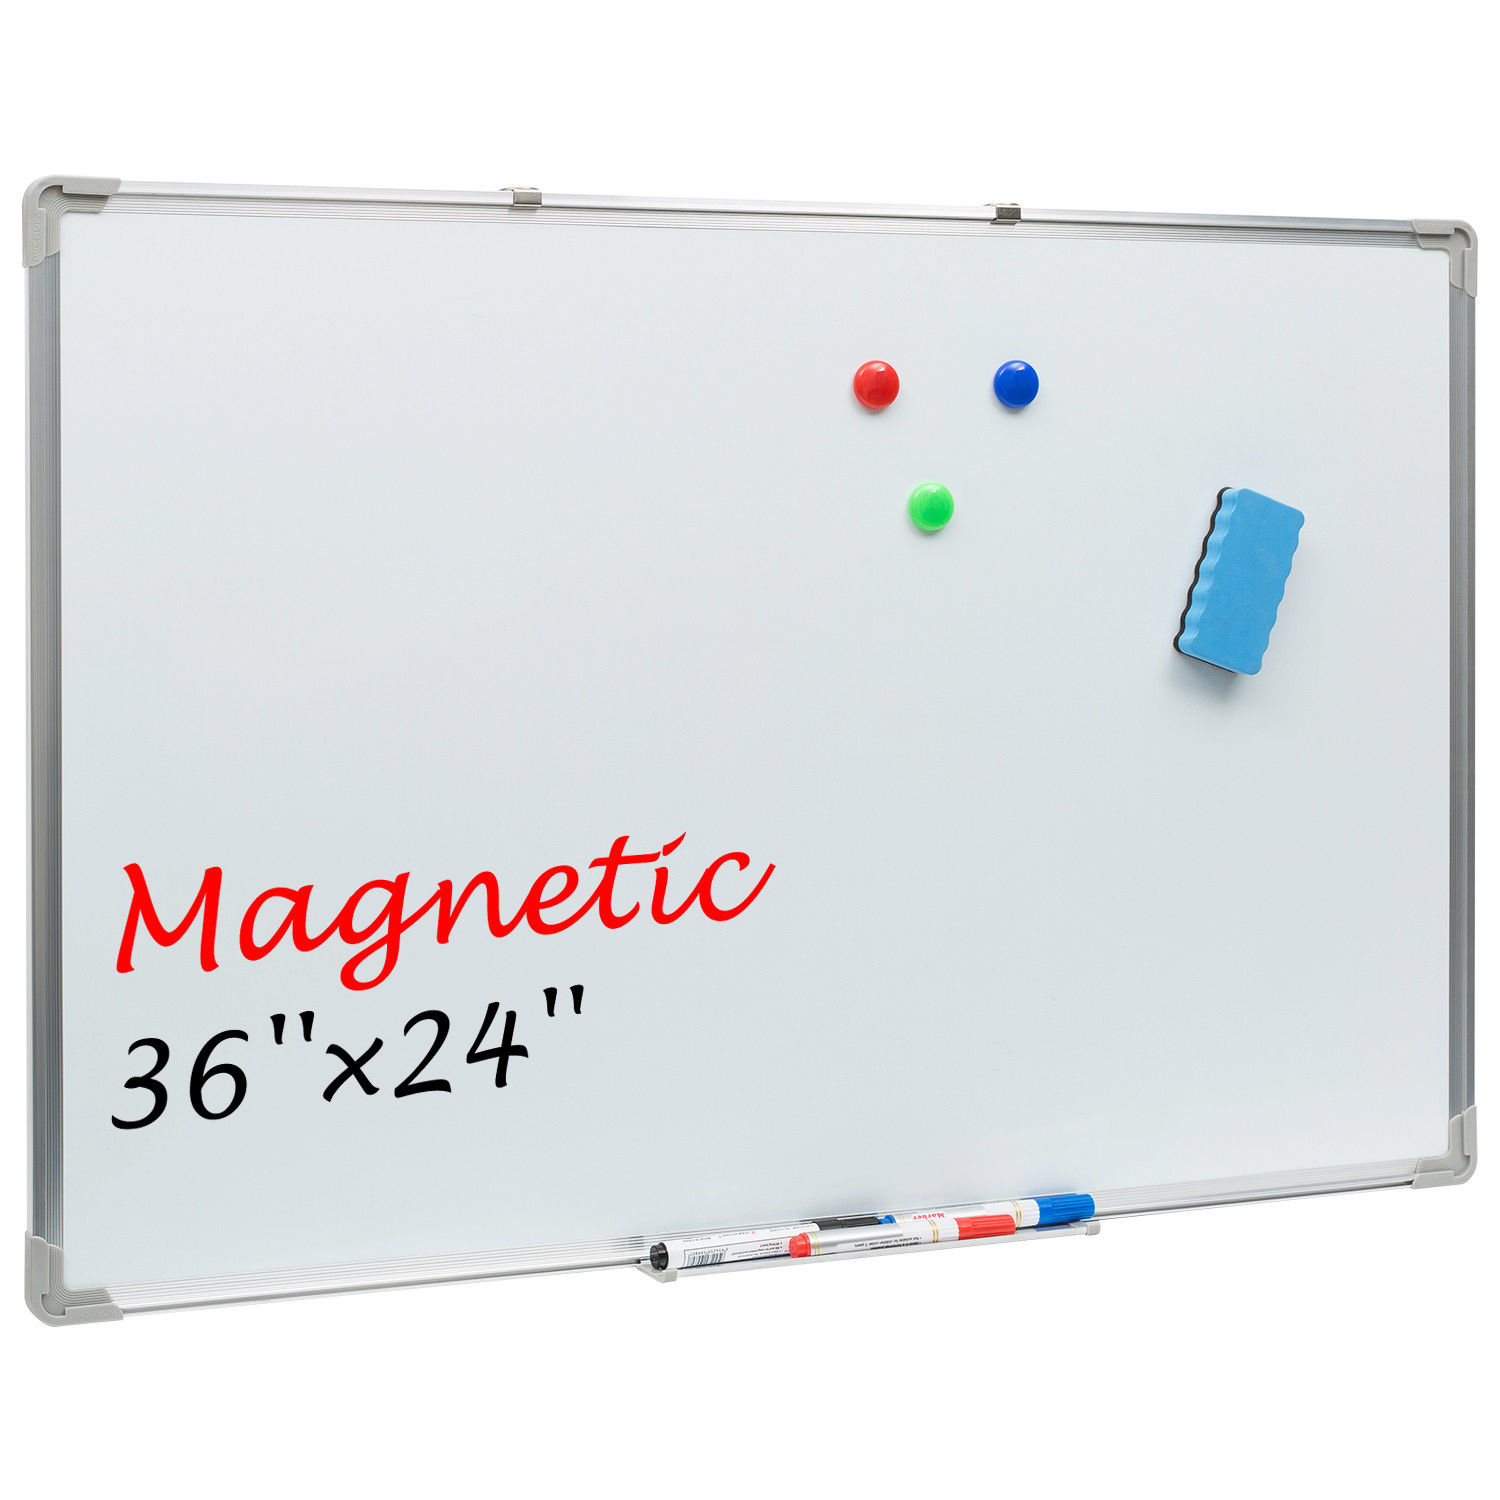 Magnet Whiteboard Large Dry Wipe Magnetic Whiteboard Dry Magnetic